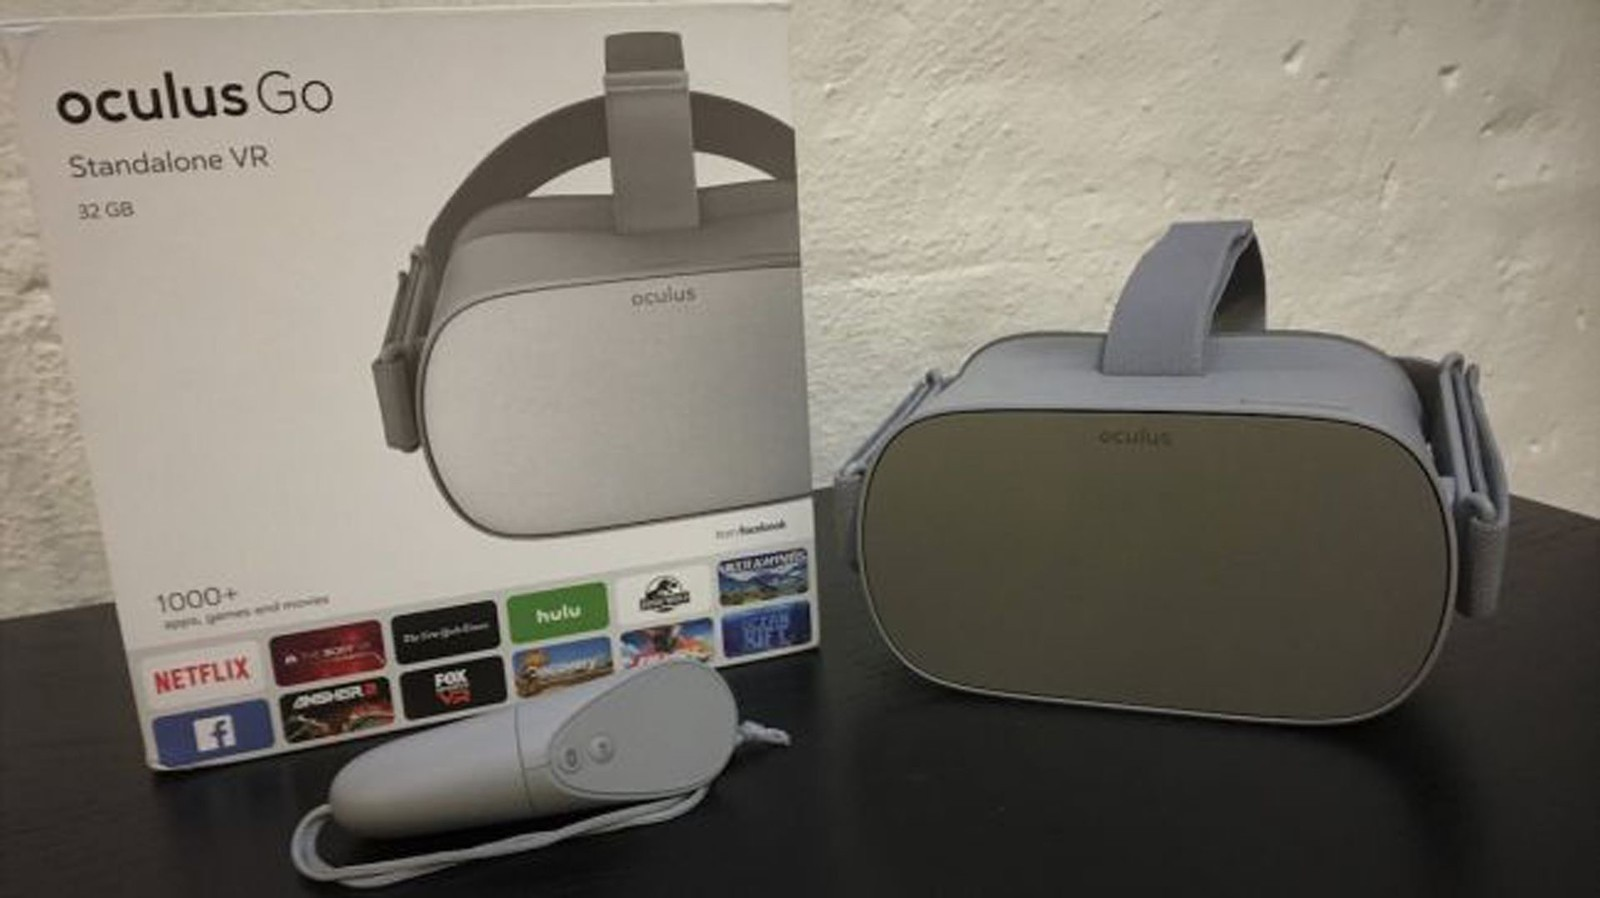 oculus-go-display